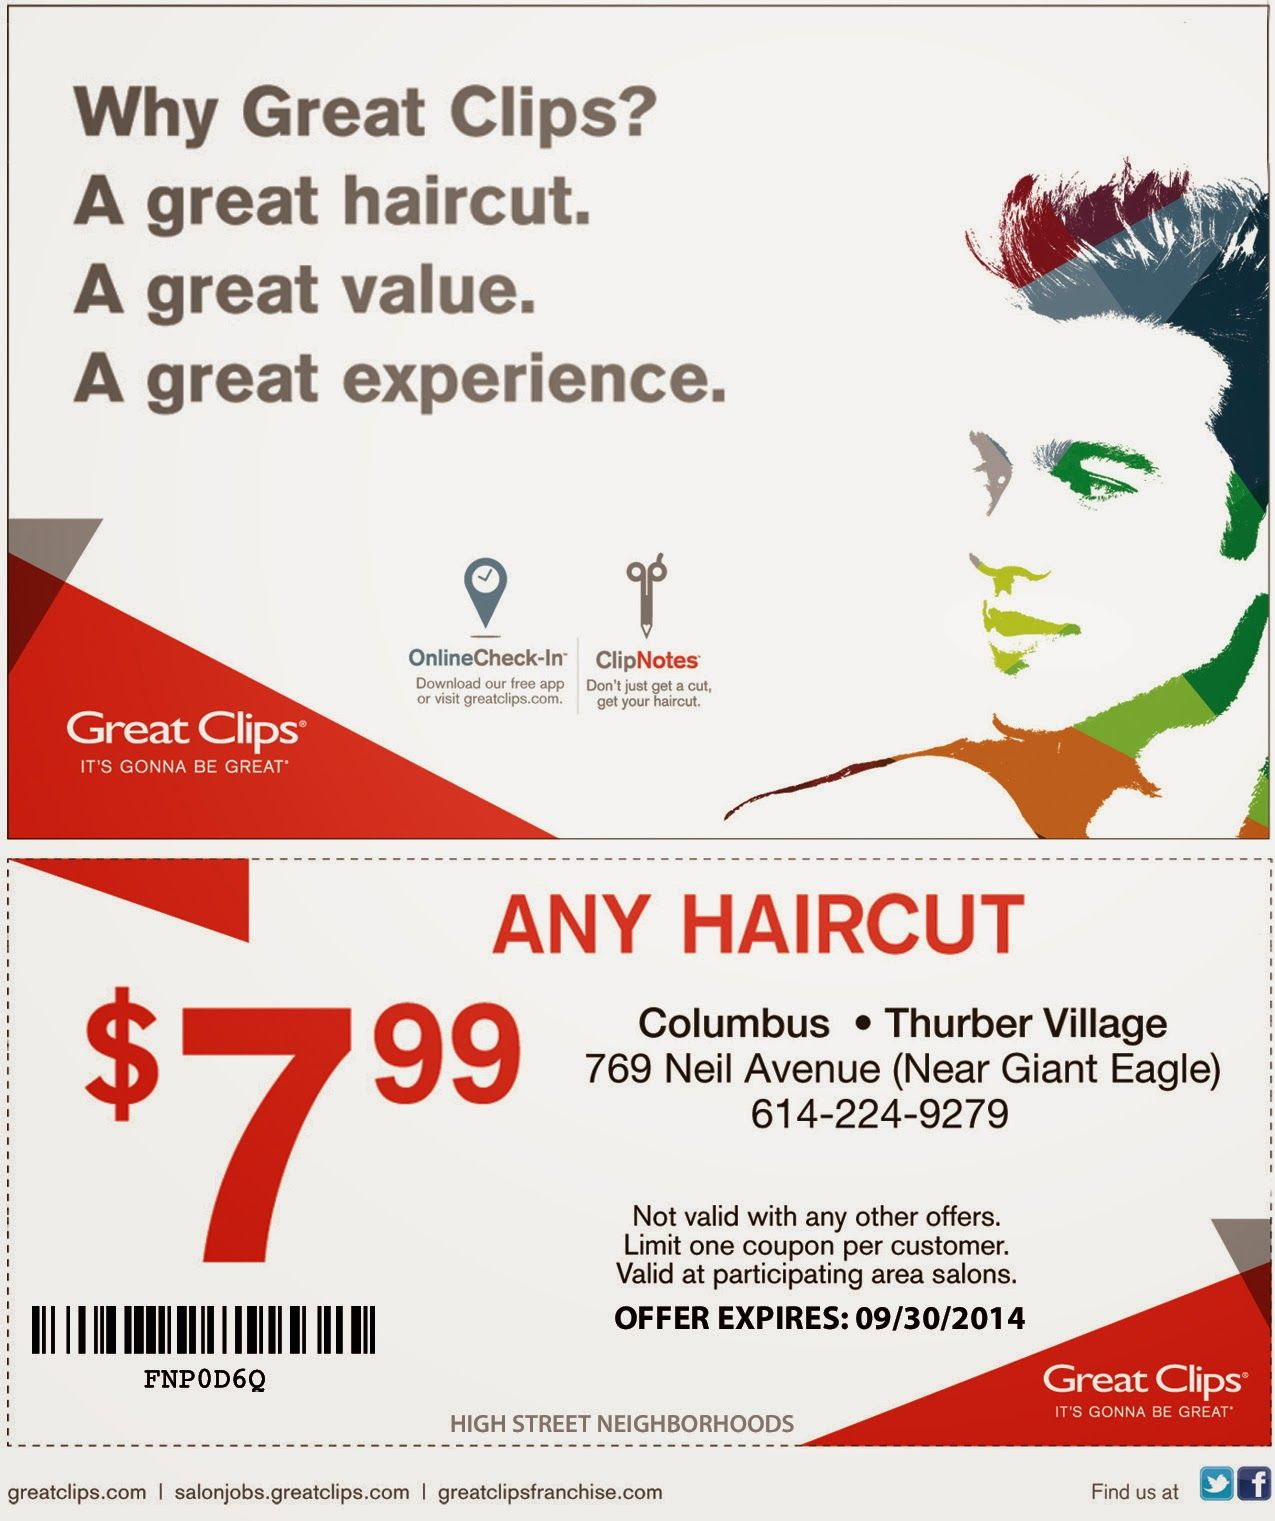 27 Great Clips Free Haircut Coupon   Hairstyles Ideas - Great Clips Free Coupons Printable